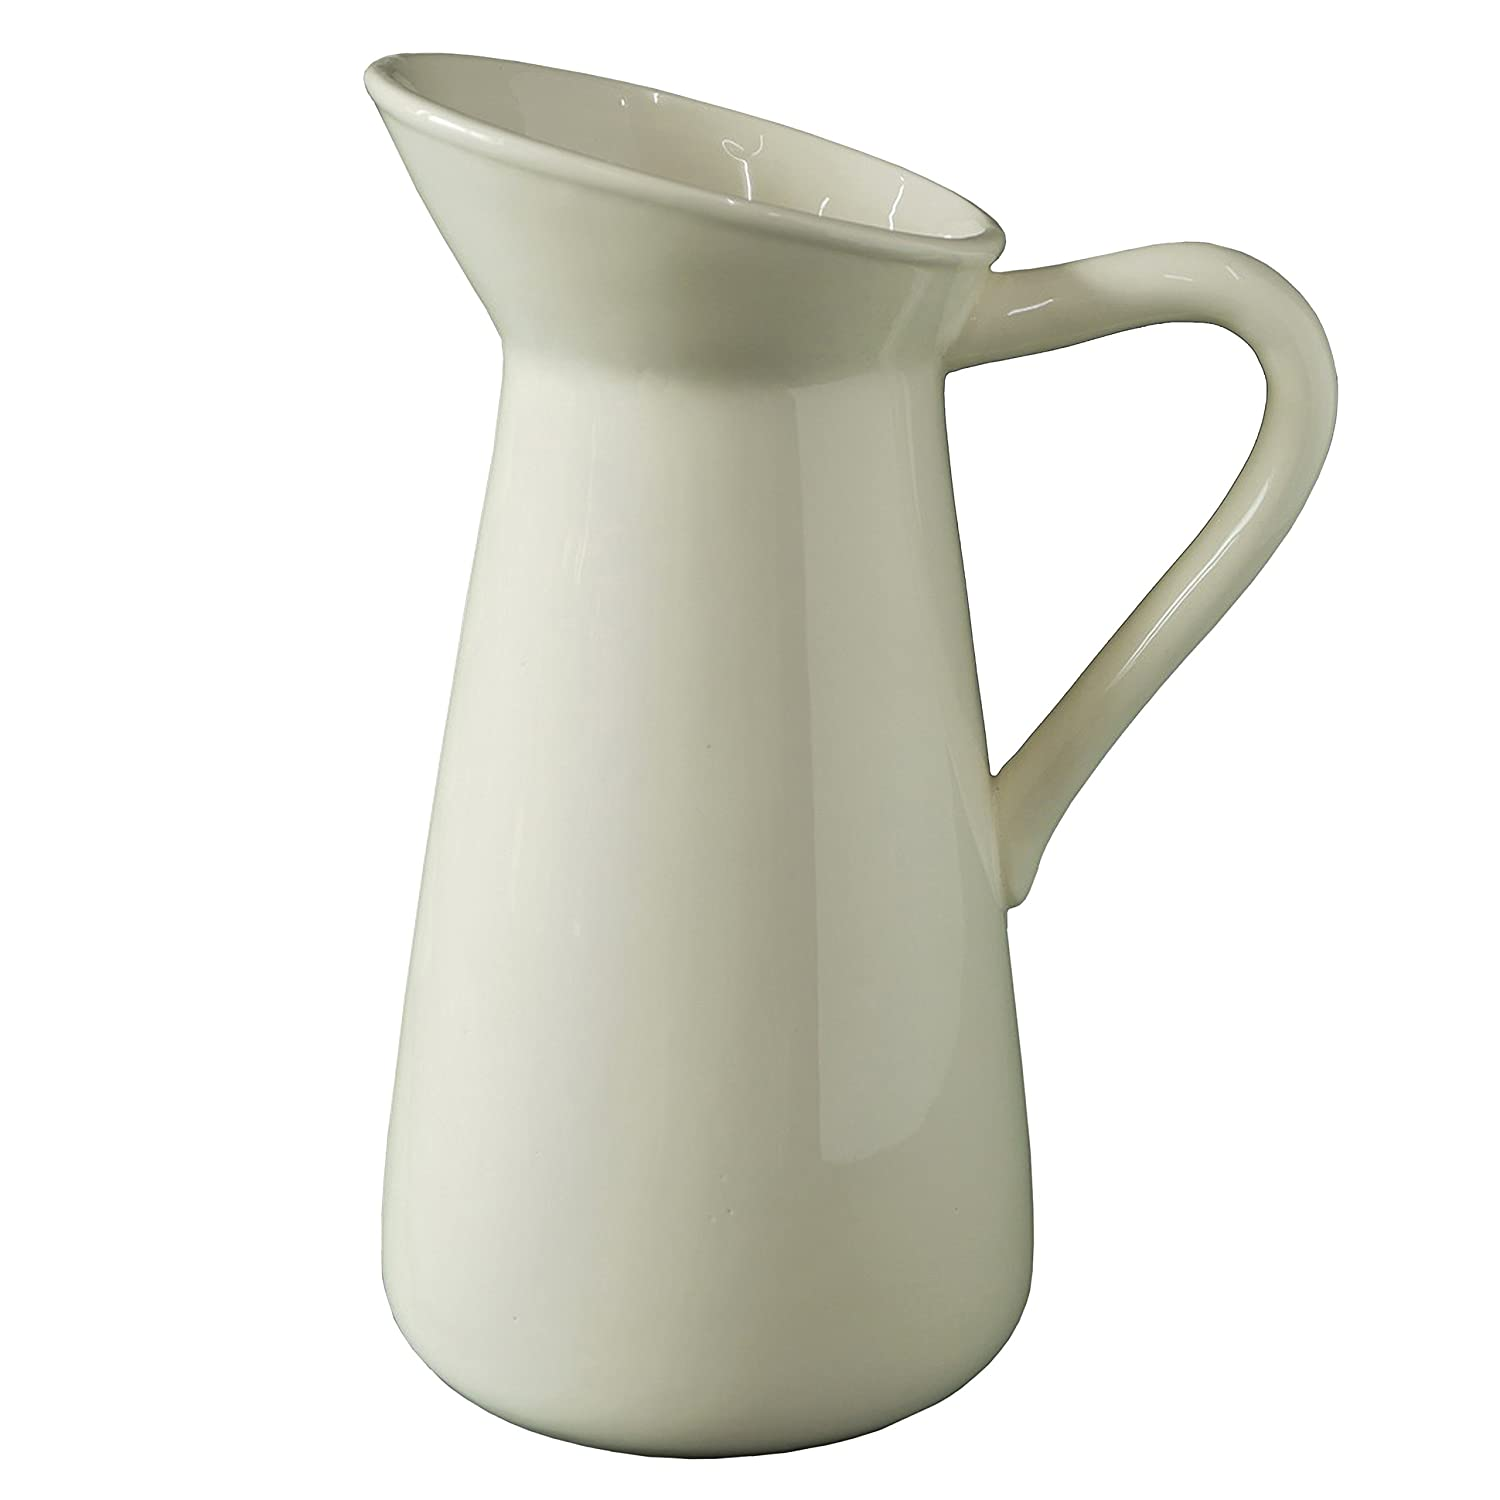 "Hosley Cream Ceramic Pitcher/Vase - 10"" High, for Flowers/Decorative Use. Ideal for Dried Floral Arrangements Gifts for Home, Weddings, Spa and Aromatherapy Settings O3"